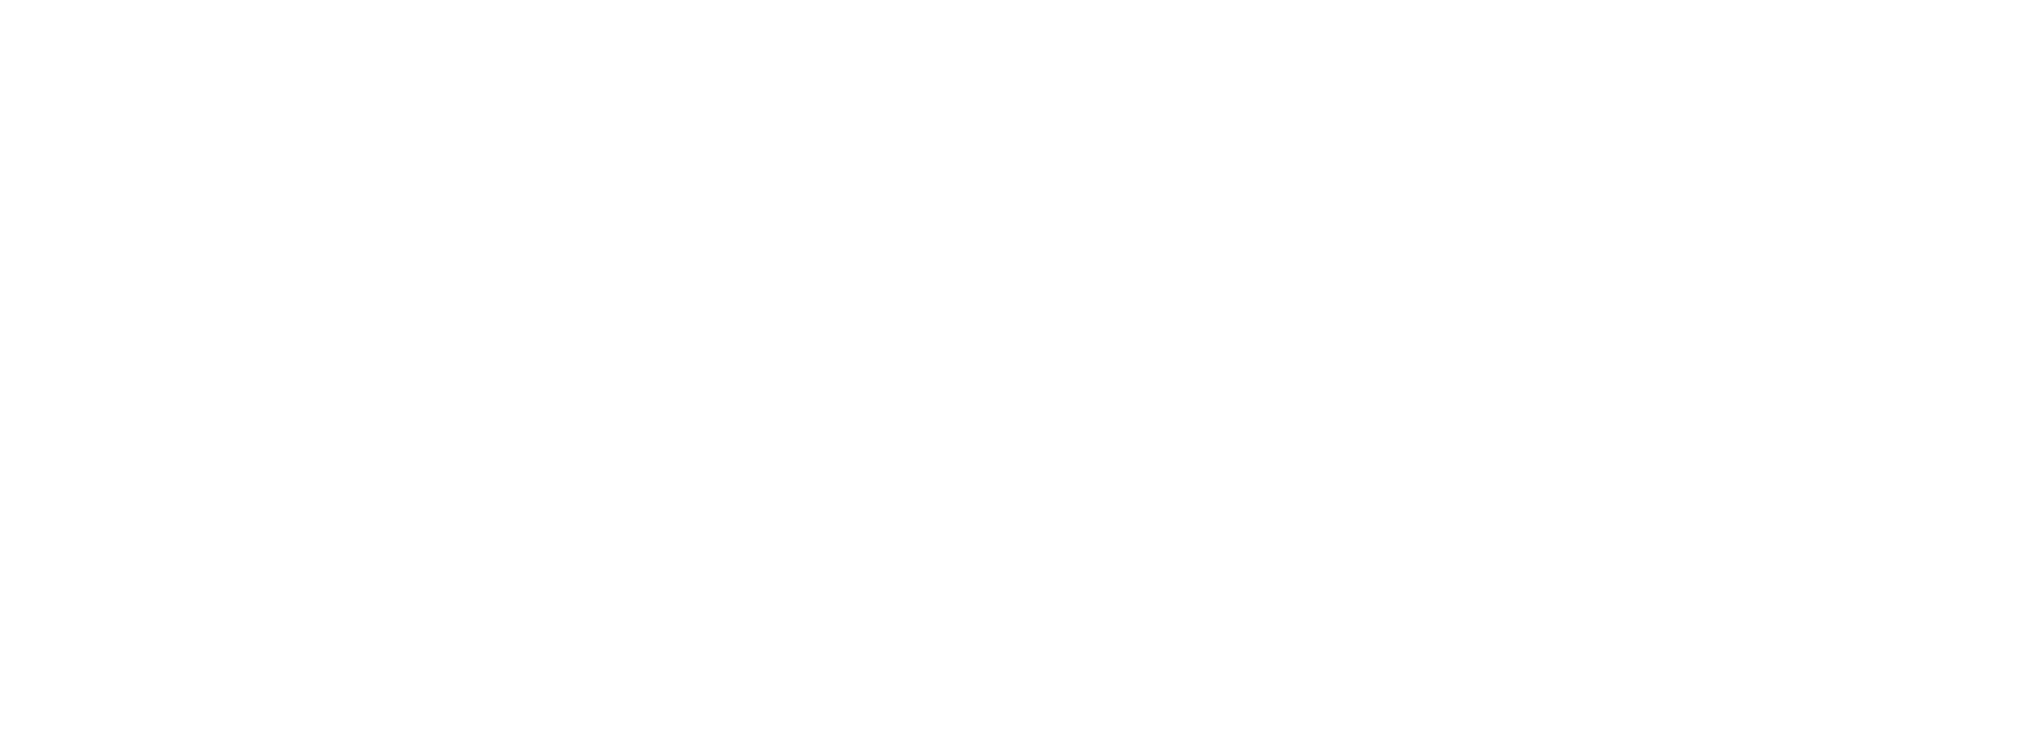 Contact Centre Agent Experience 2020